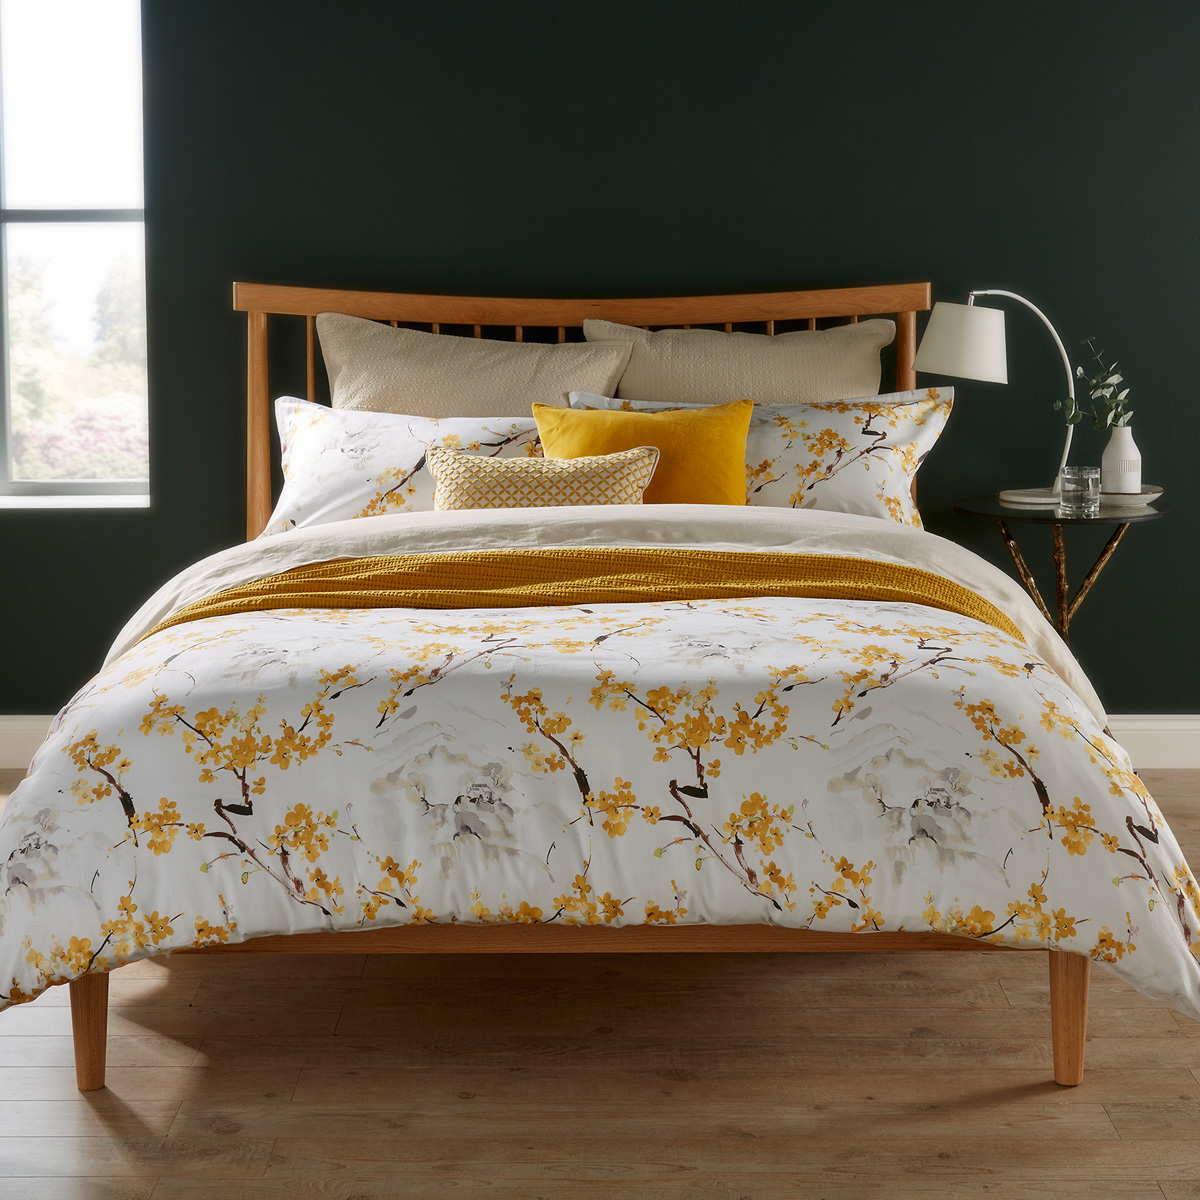 Christy Haruki Bed Linen Ochre Christy